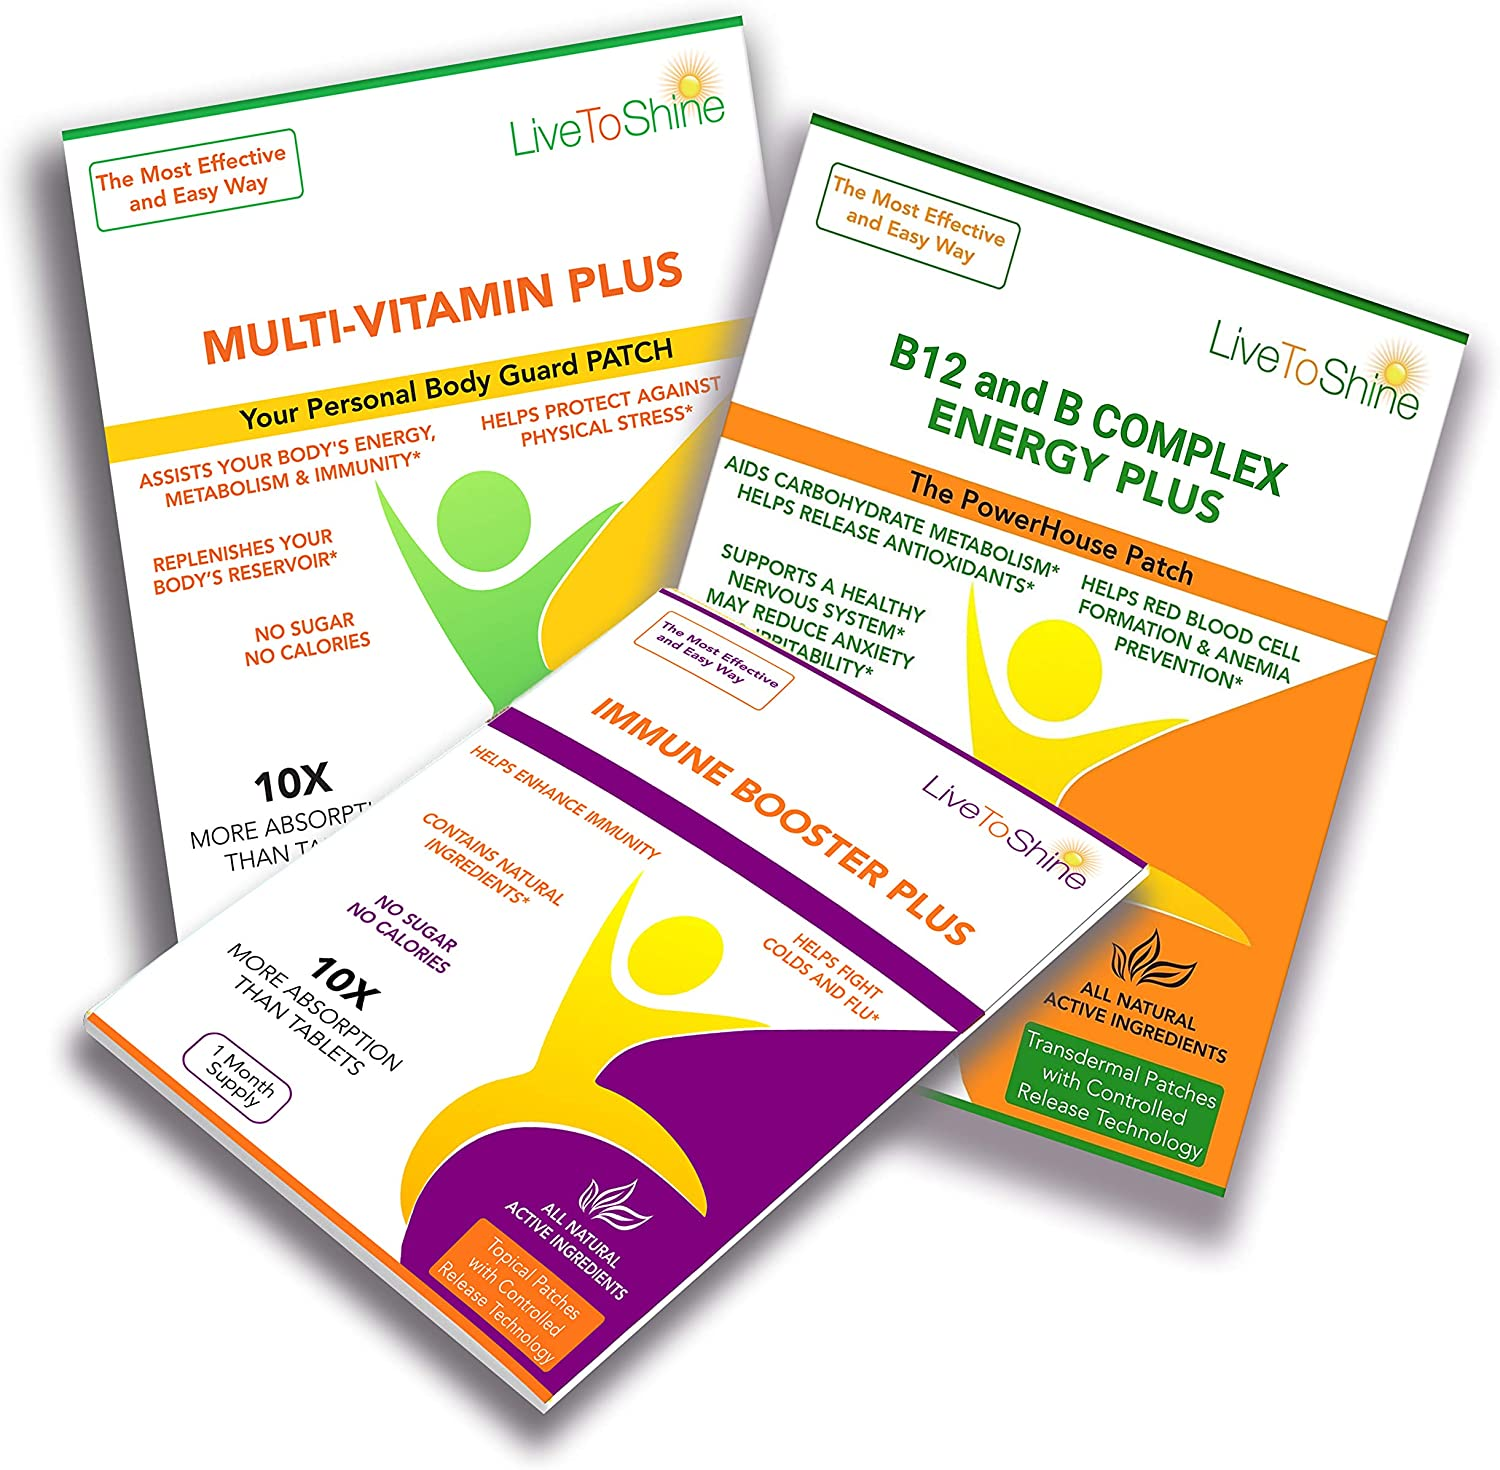 Over 50's Vitamins for Men Bundle - Multi Plus Body Guard Patches to Support Your Overall Health - B12 and B Complex Powerhouse Patch to Give You Energy - Immune Booster Plus Patch to Keep You Safe